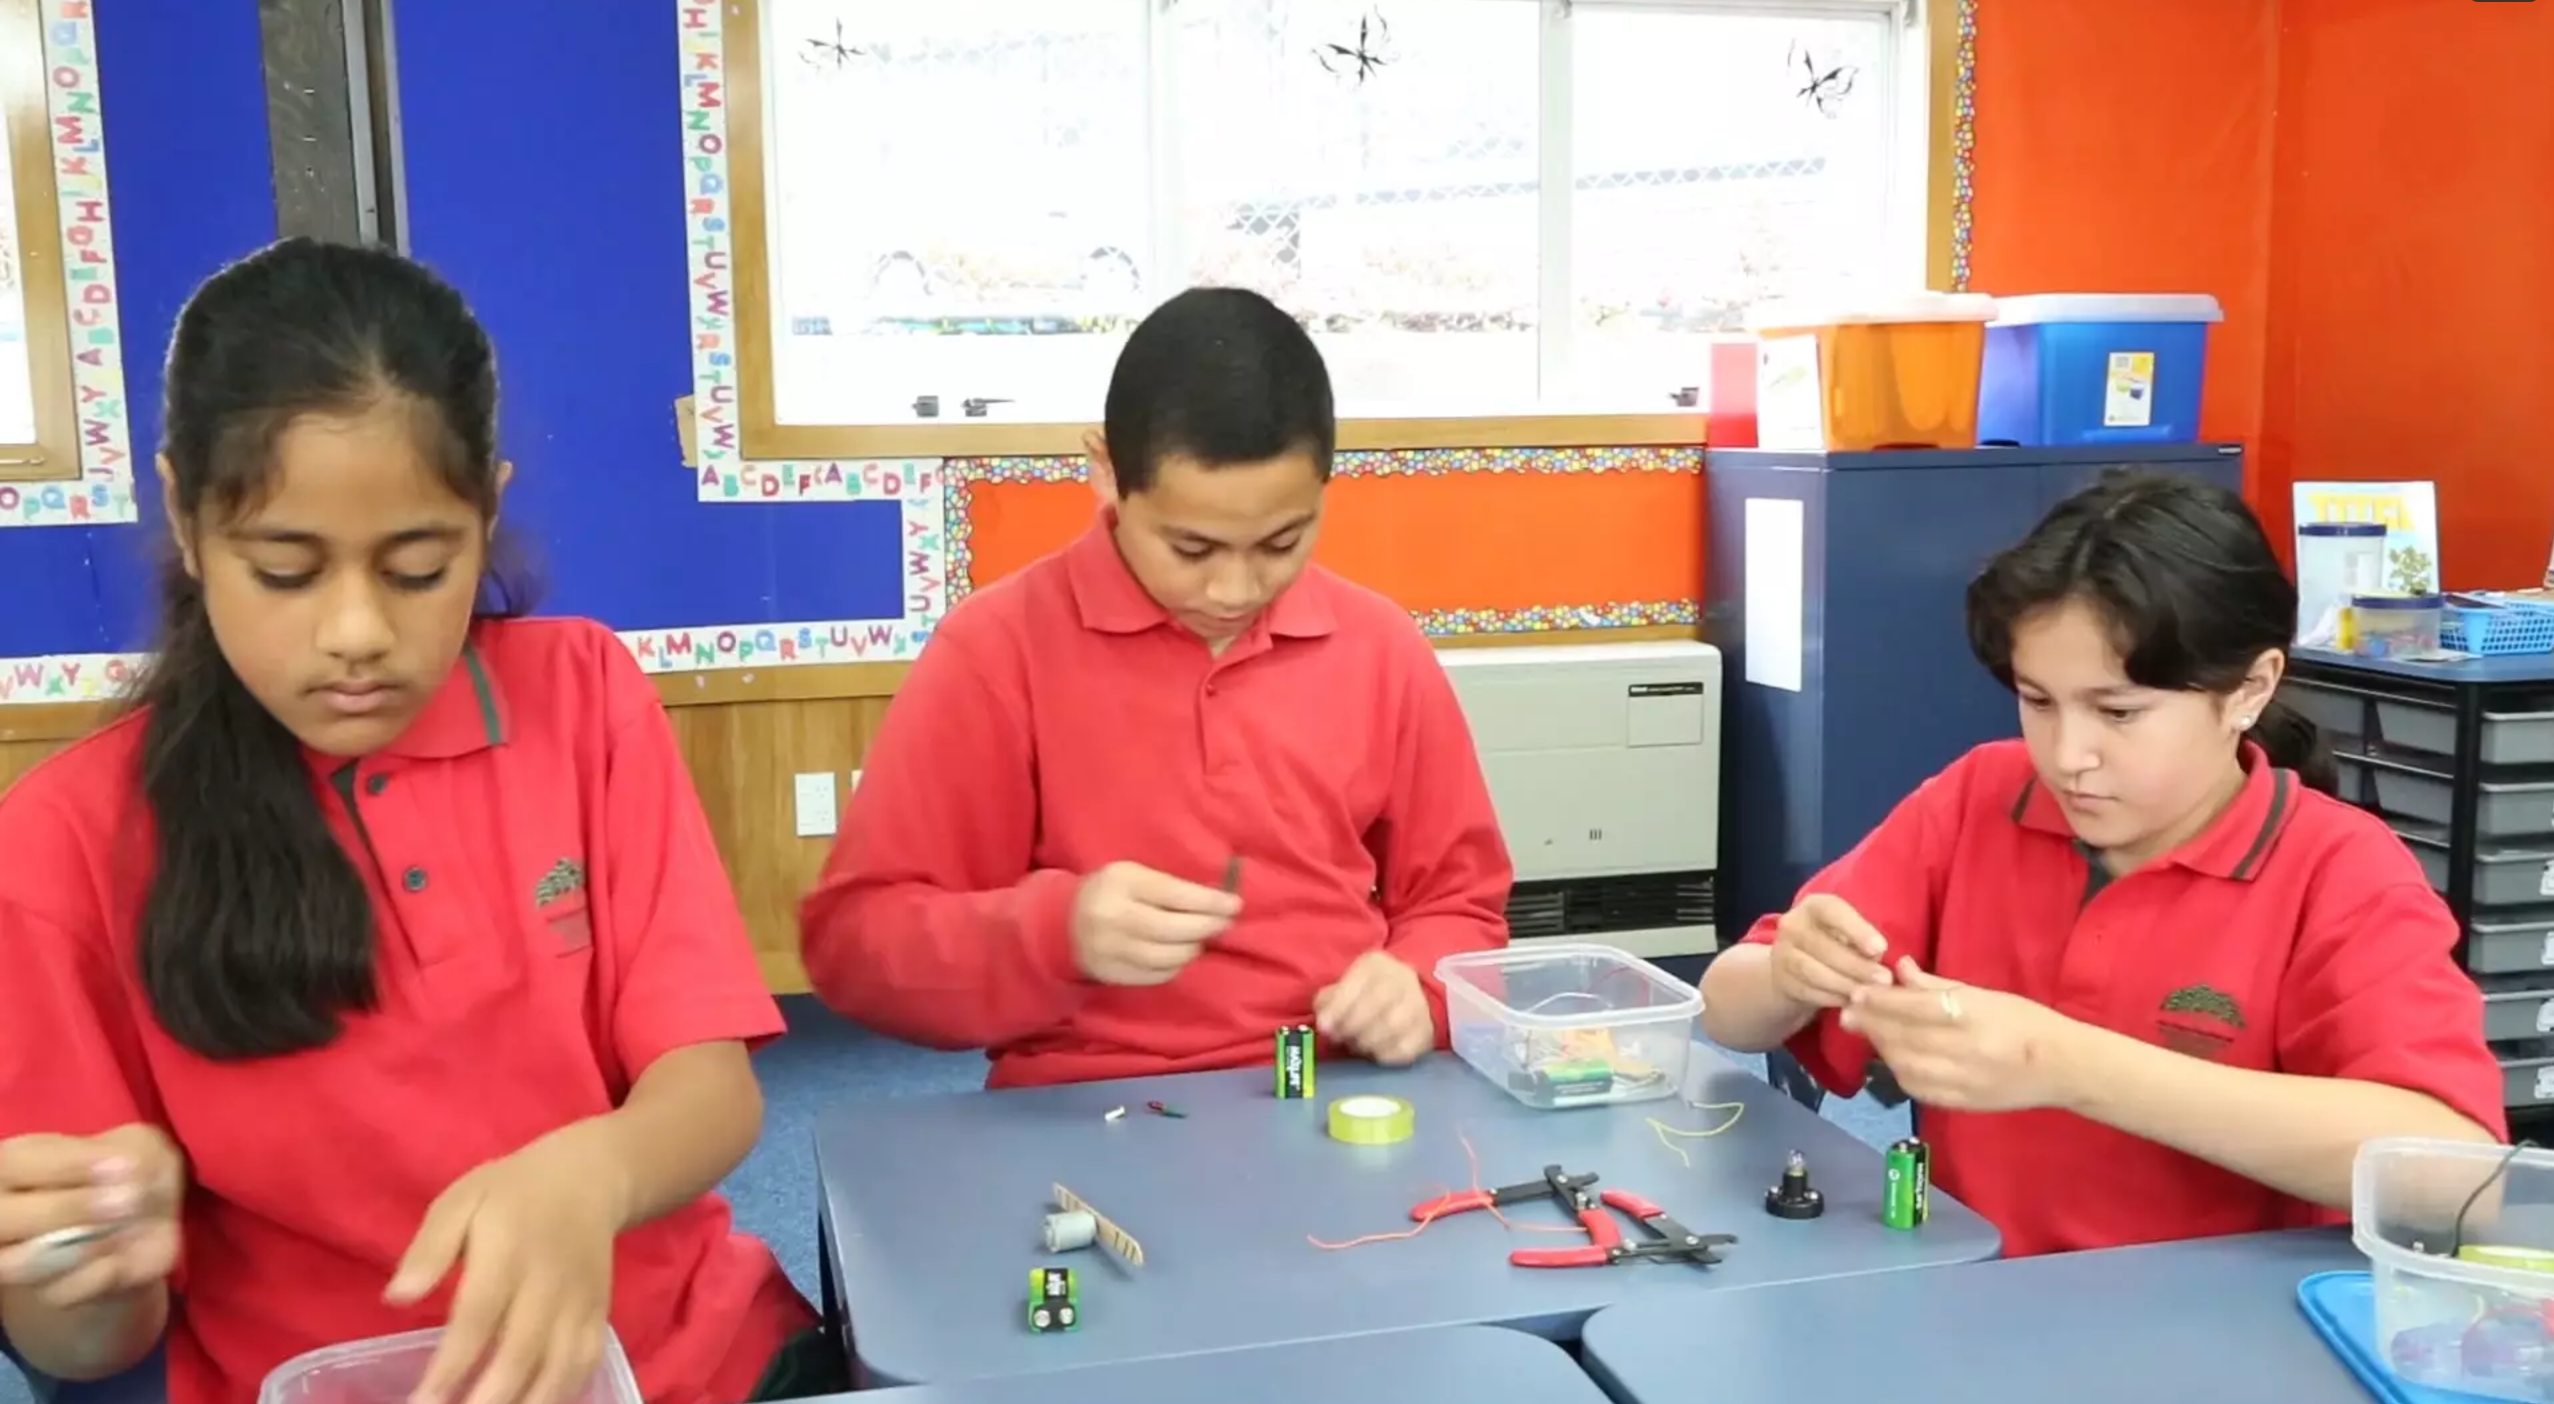 Students creating electrical circuits